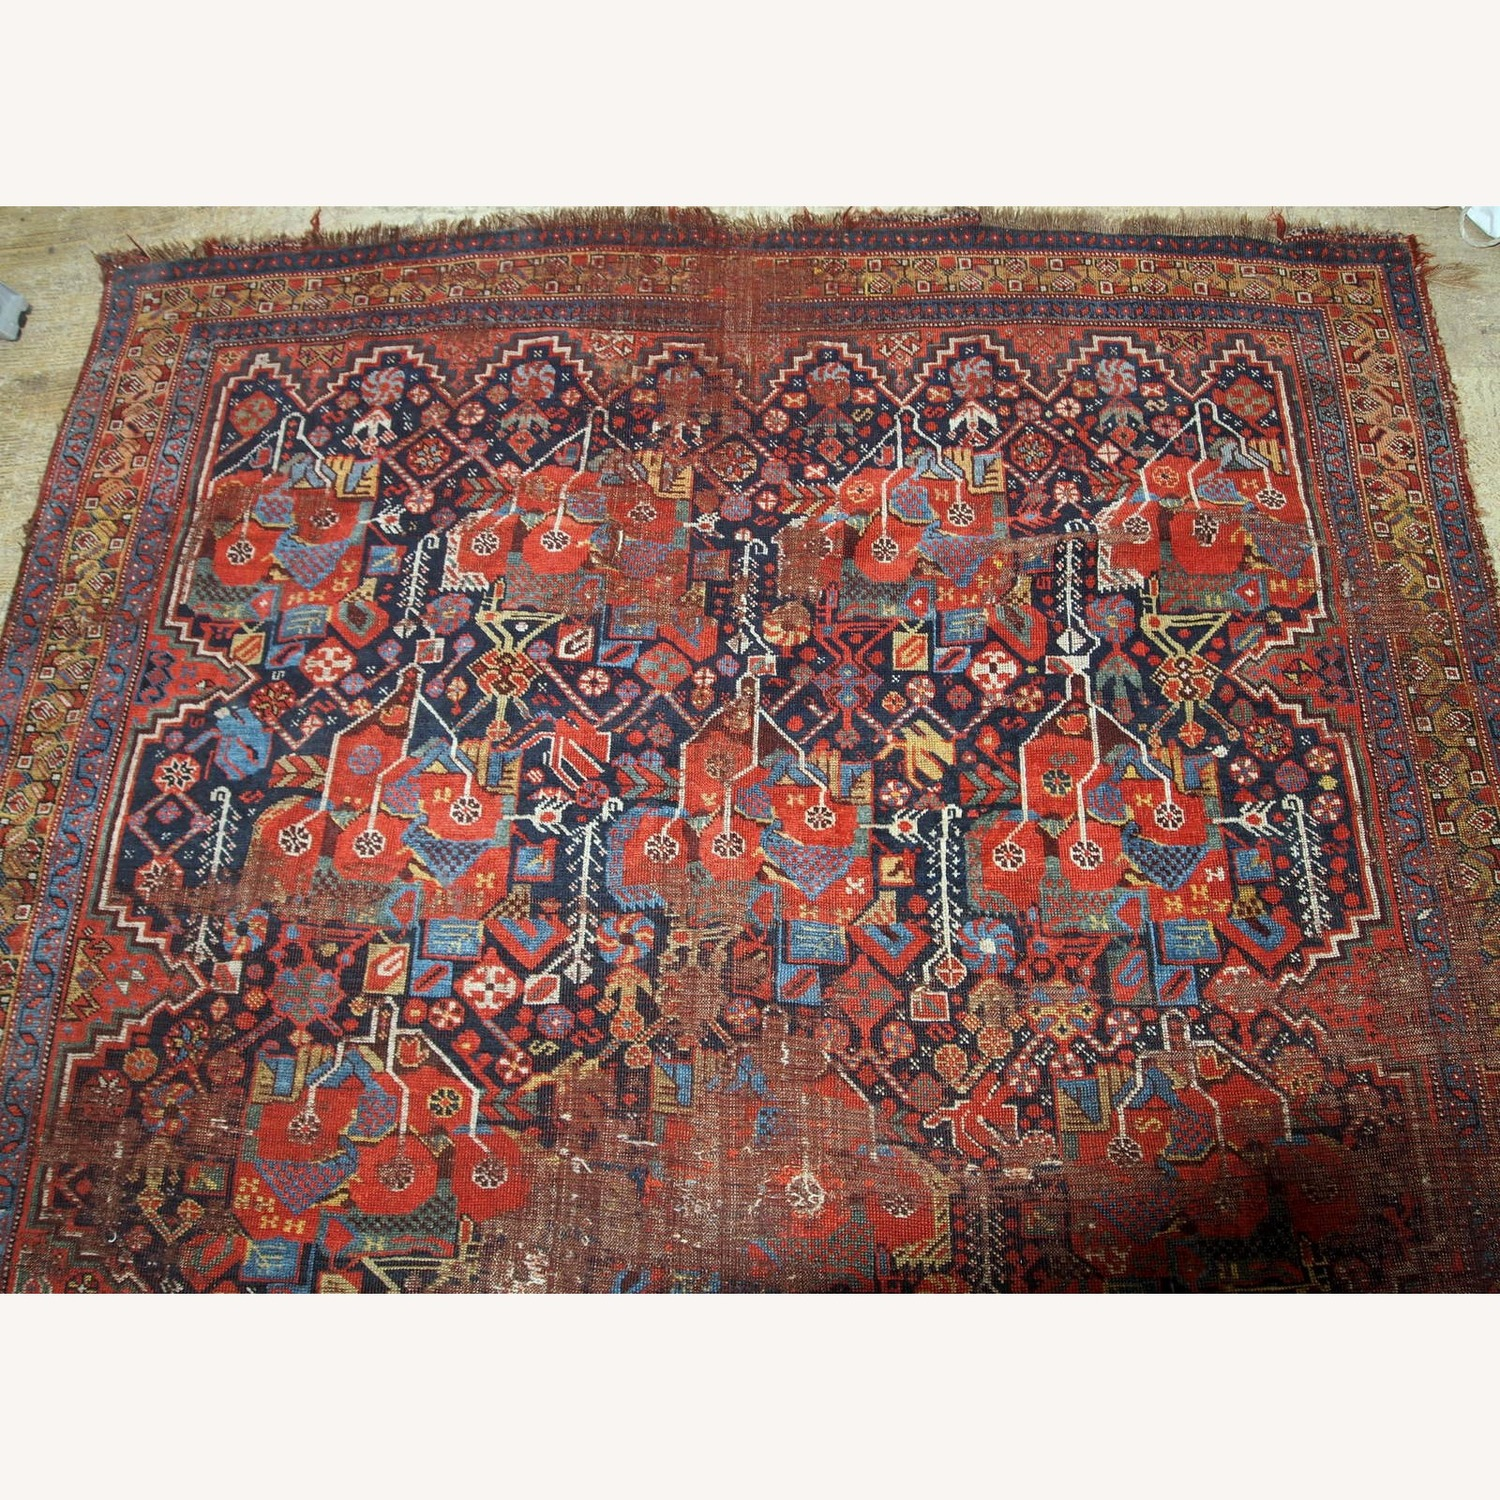 Handmade Antique Collectible Persian Khamseh Rug - image-3